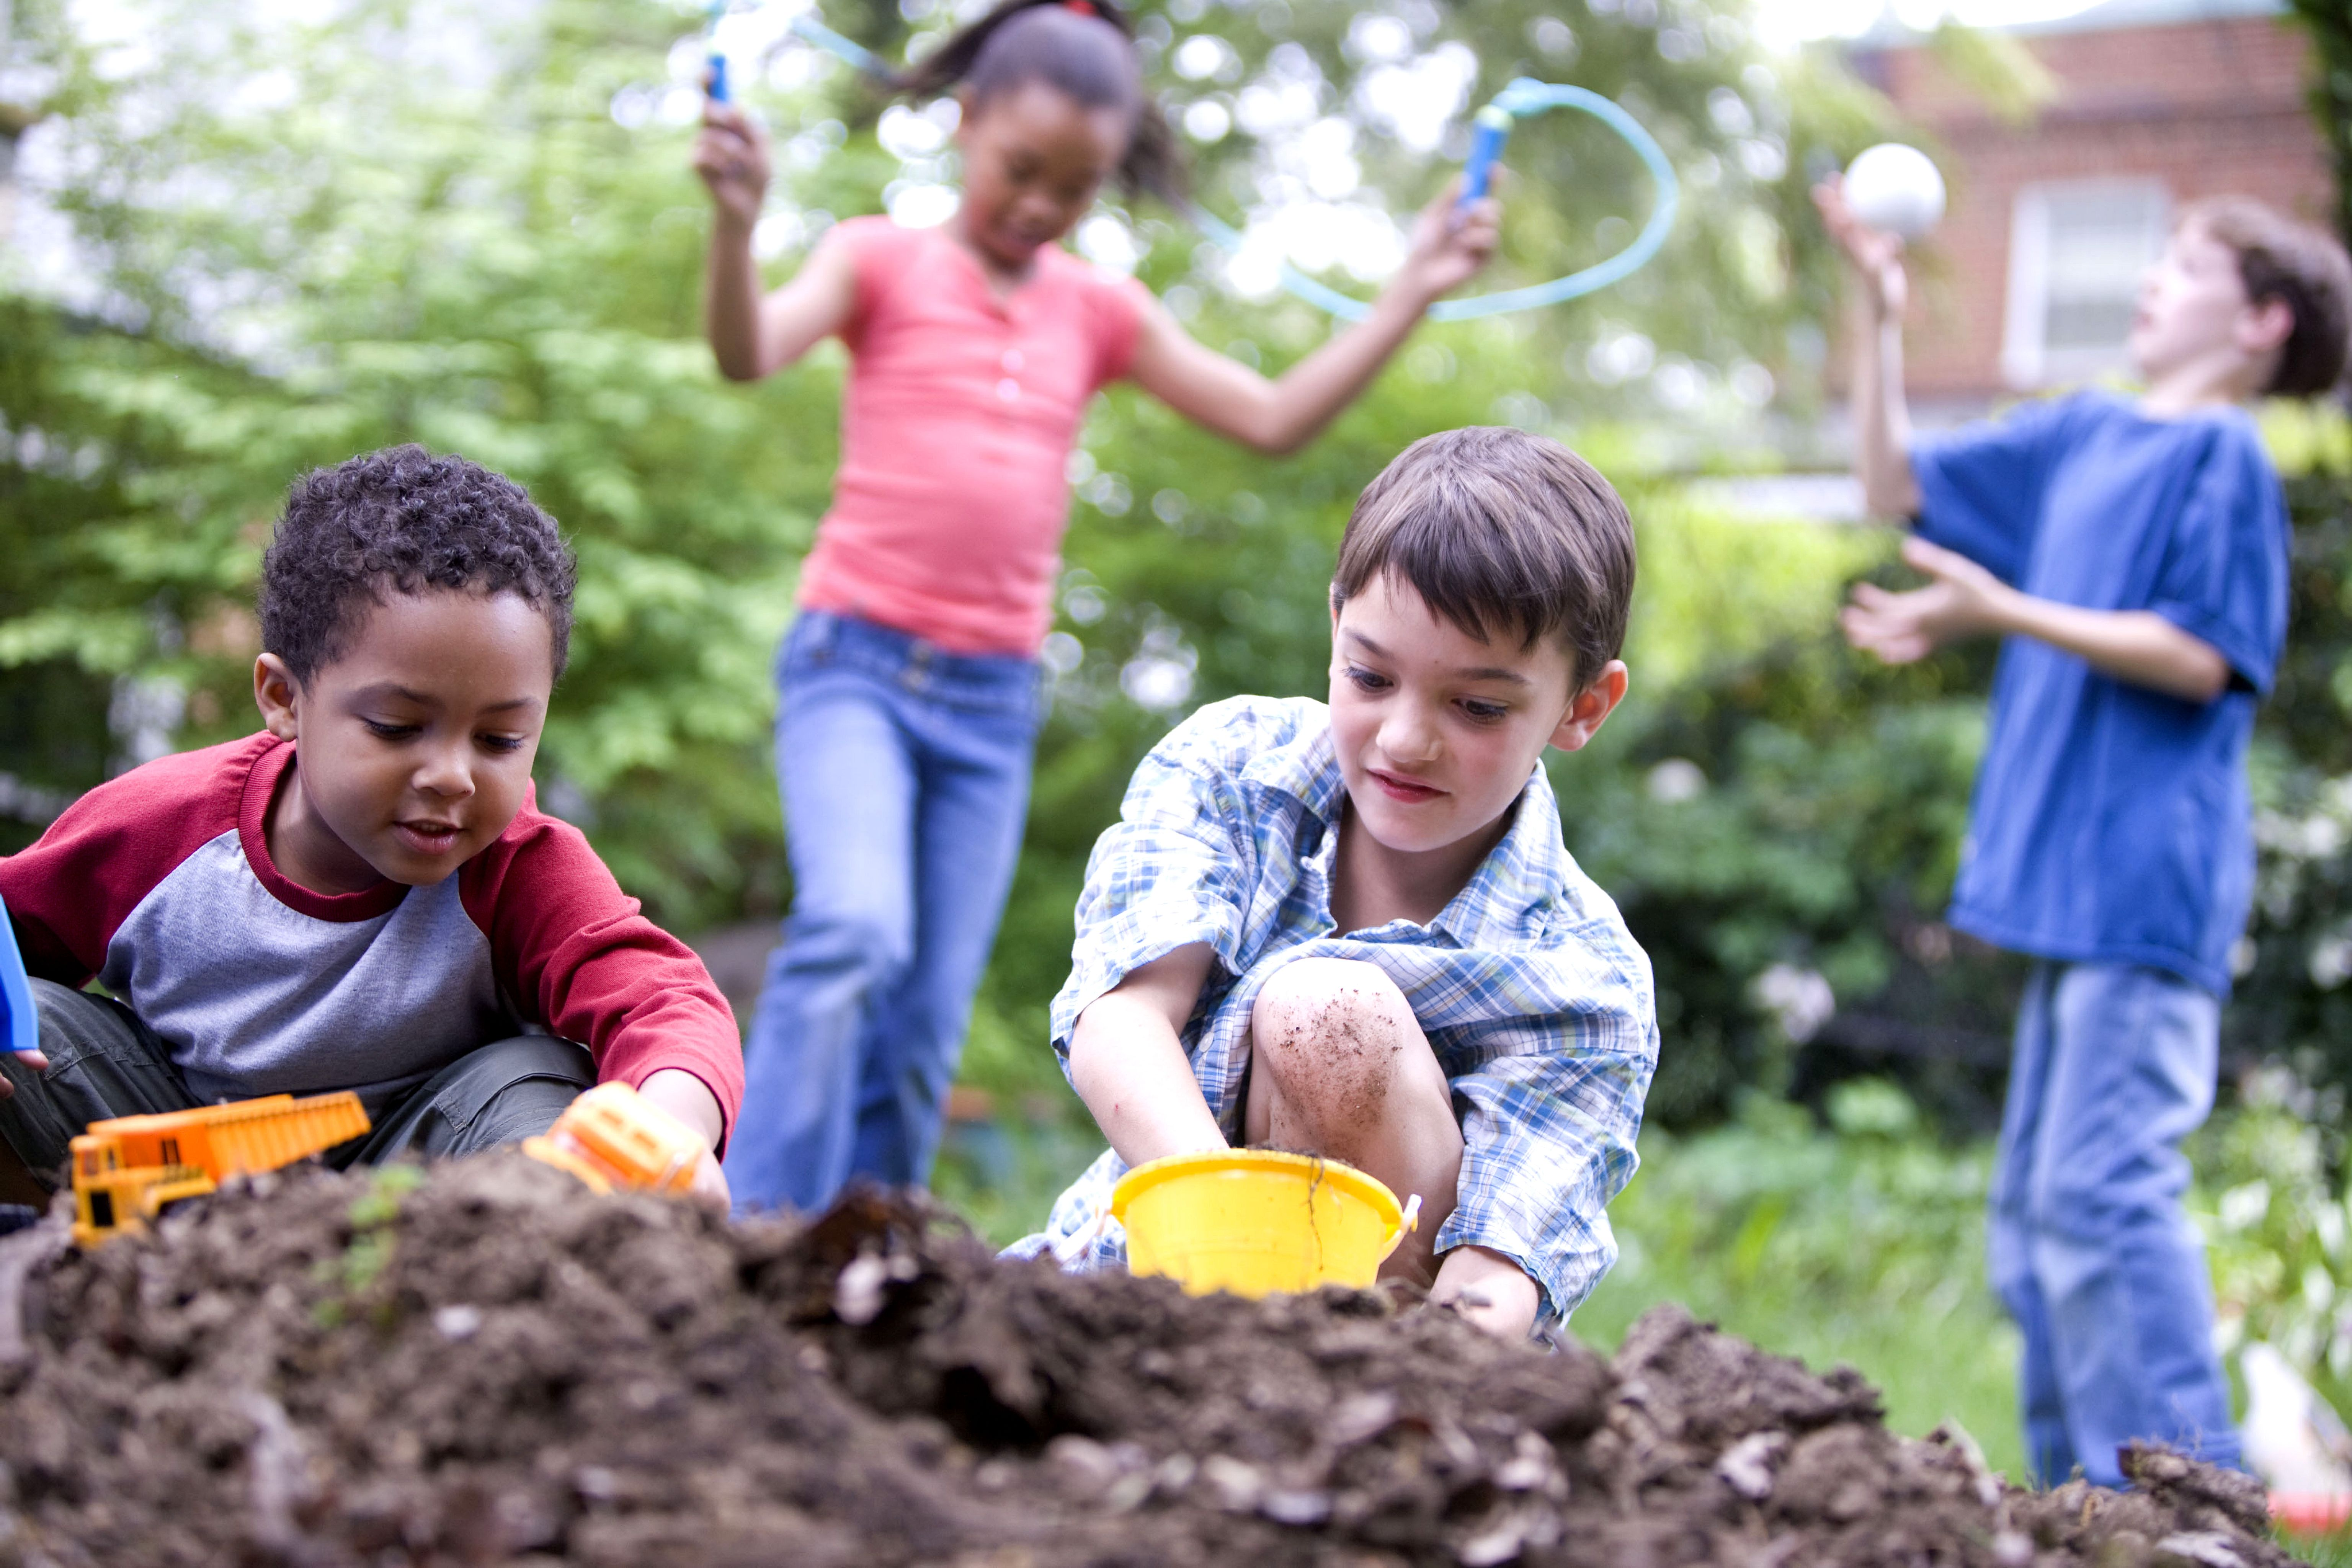 Children playing with dirt